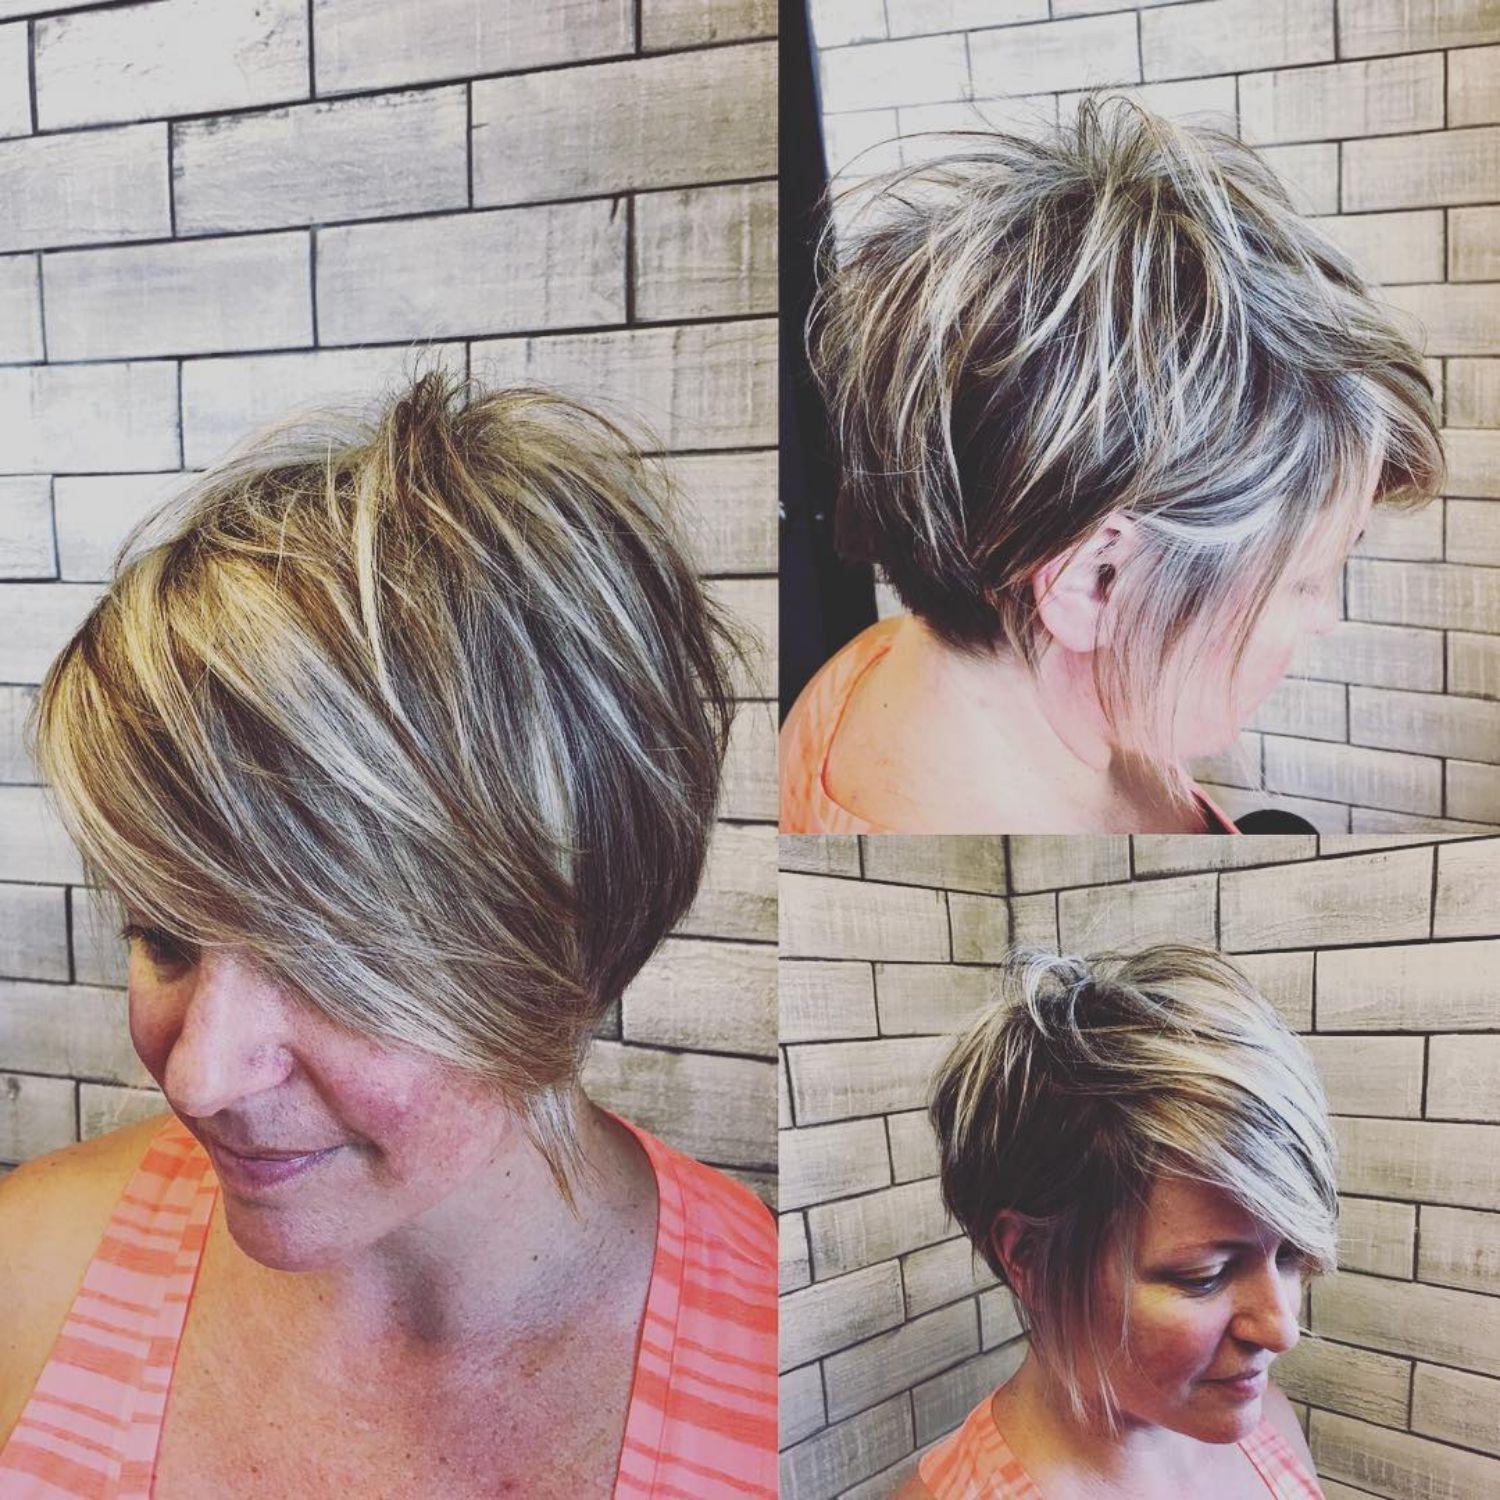 17 Tapered Pixie Haircut Styles for Women Over 50 in 2021 2ff6c0b014d0c1df34f958803b34846b